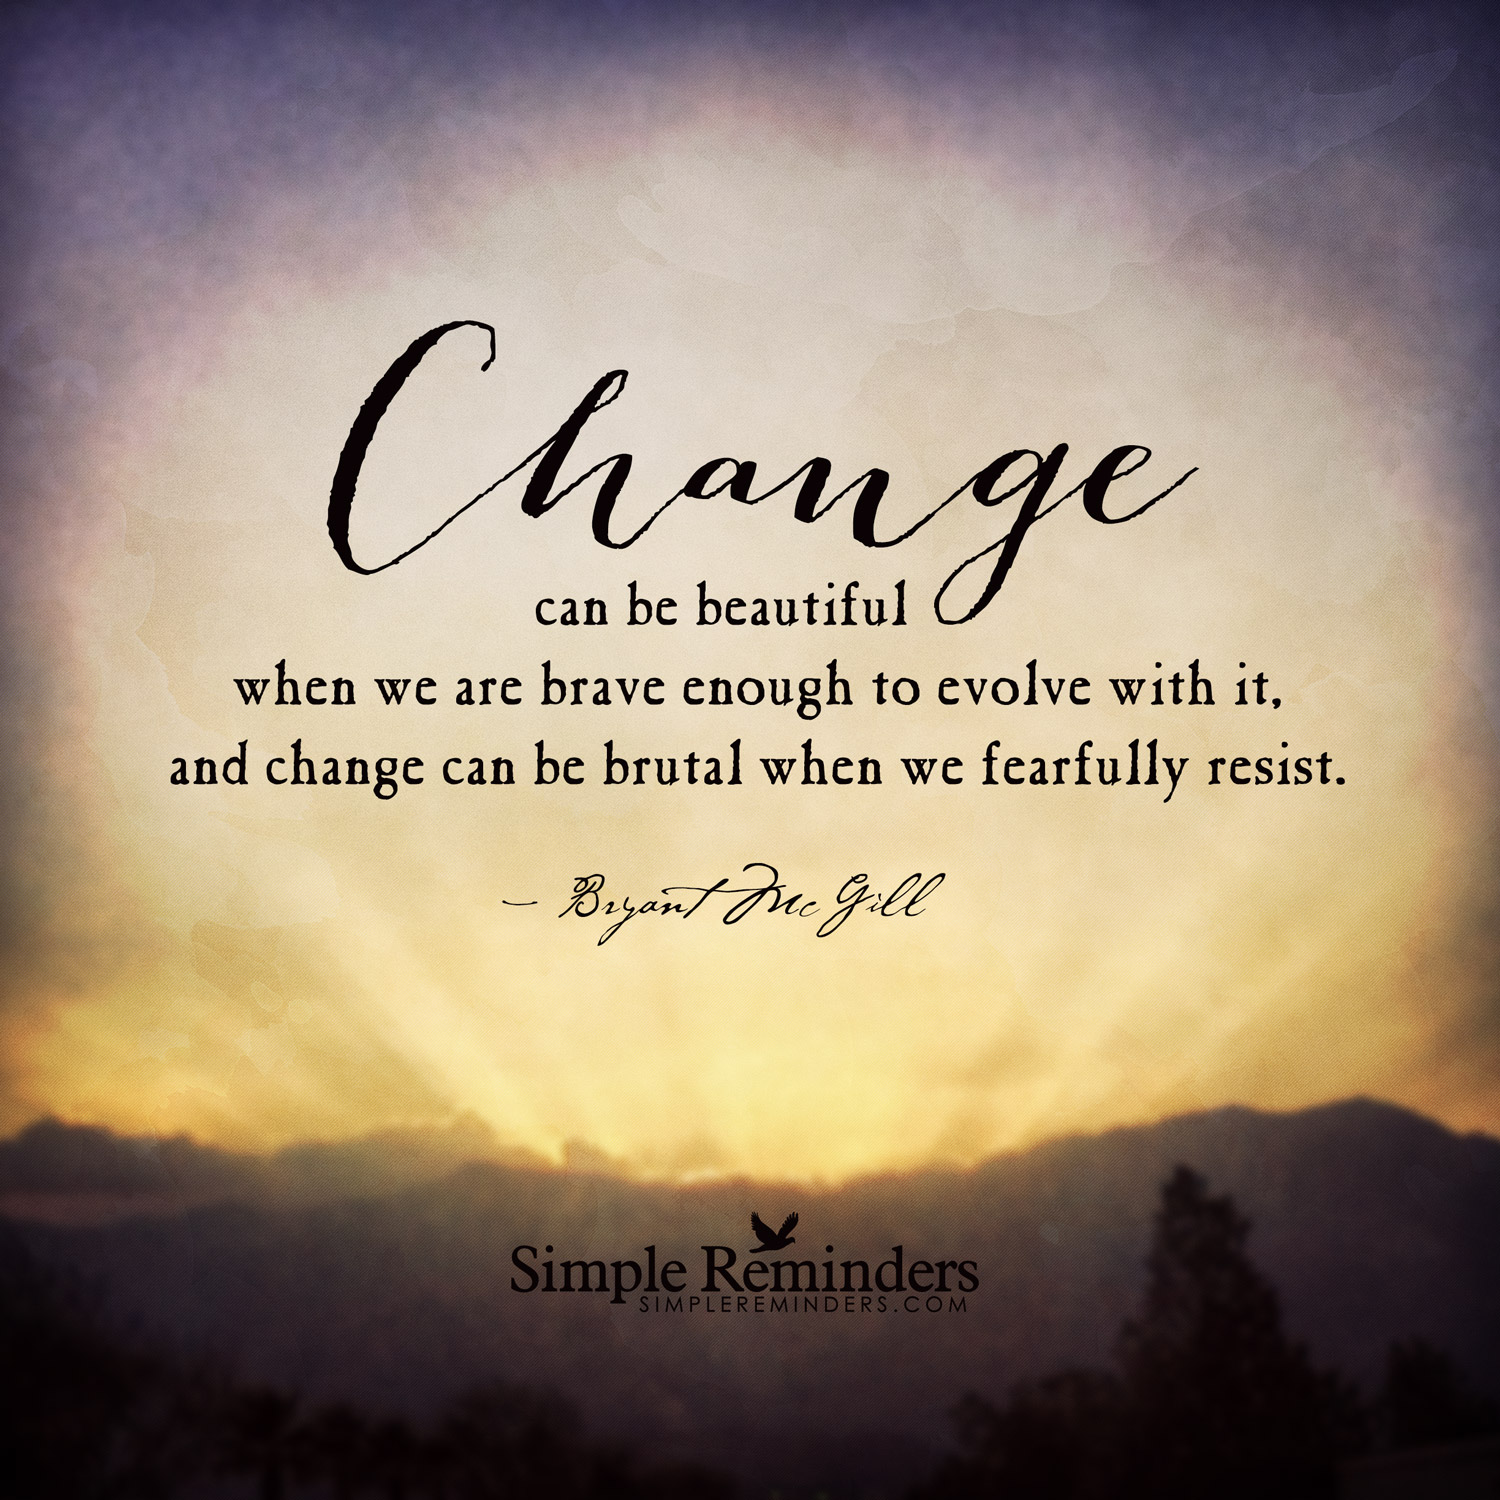 Christian Inspirational Quotes Life Changes: Reminder To Be Positive Quotes. QuotesGram